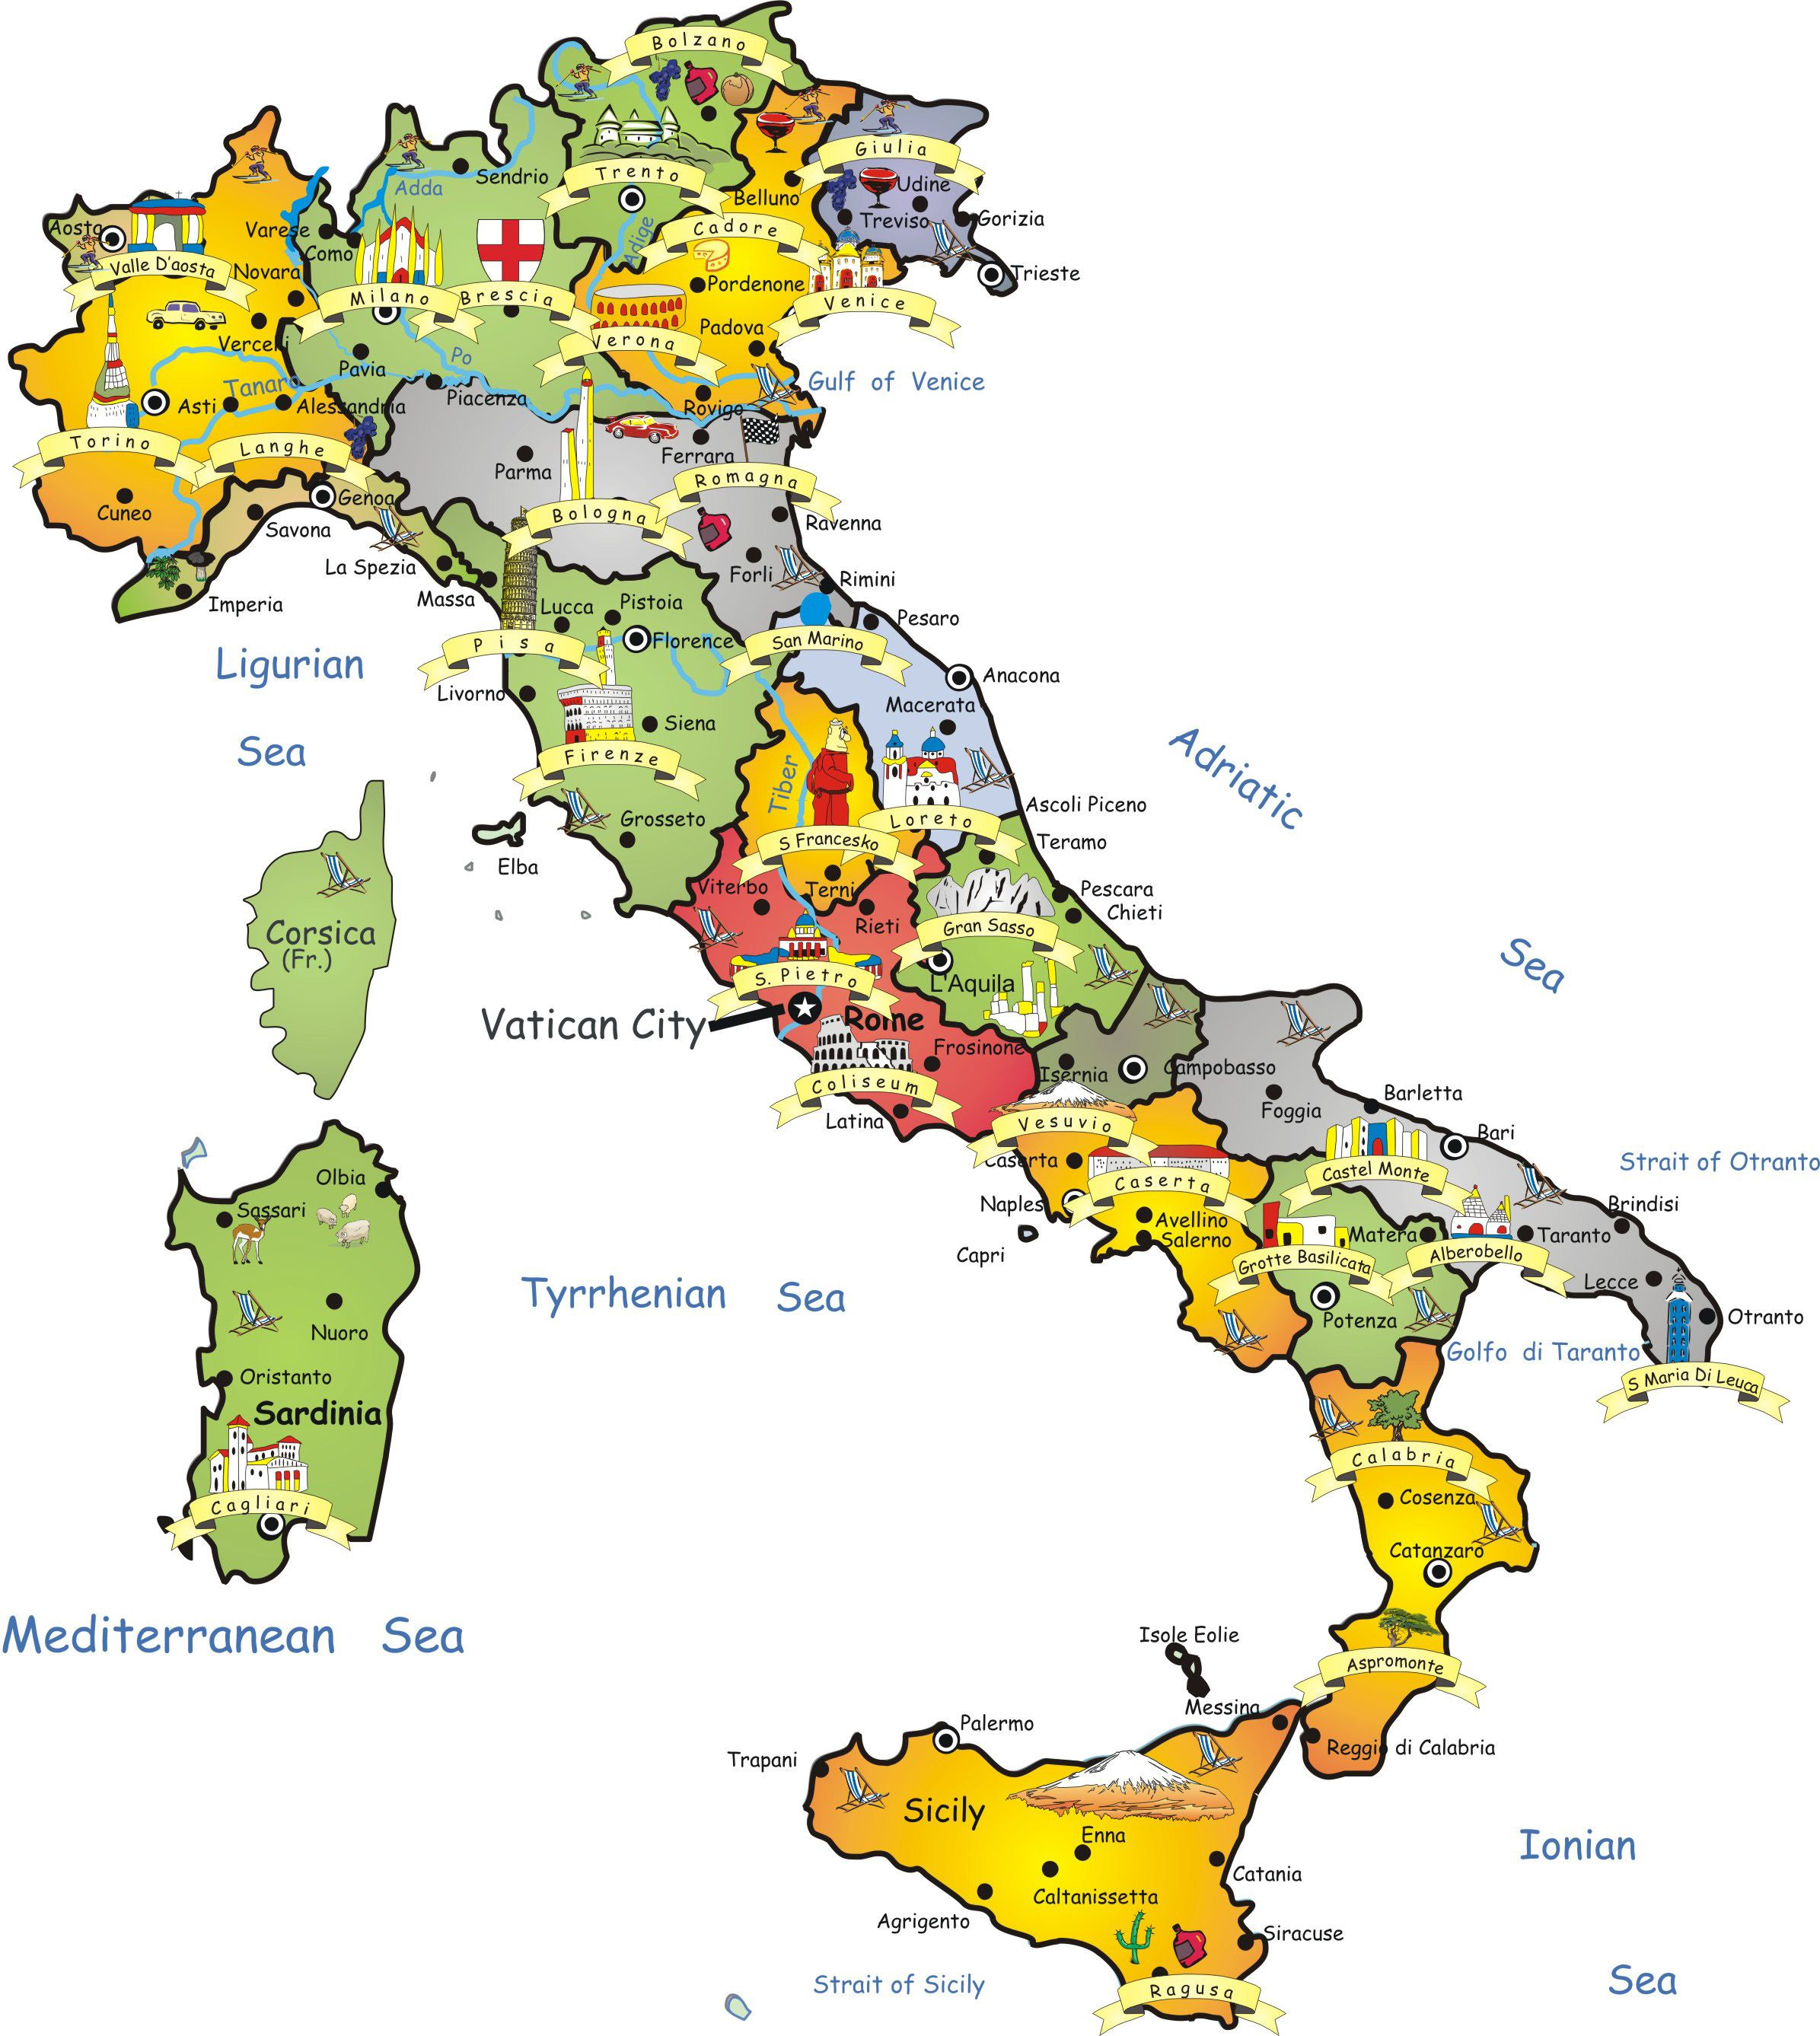 Travel map of Italy. Italy travel map. | Travel101 in 2019 ... on map of croatia, map of turkey, map of czech republic, turin italy, florence italy, map of amalfi coast, map of roman empire, map of slovenia, palermo italy, rome italy, map of venice, map of pompeii, map of southern europe, map of tunisia, bari italy, milan italy, italy flag, map of hungary, map of tuscany, modena italy, italy weather, map of malta, map of mediterranean, map of norway, map of cyprus, bologna italy, genova italy, venice italy, map of yemen, verona italy, italy travel, map of sweden, lake como italy, map of united states, naples italy, italy tourism, pisa italy,